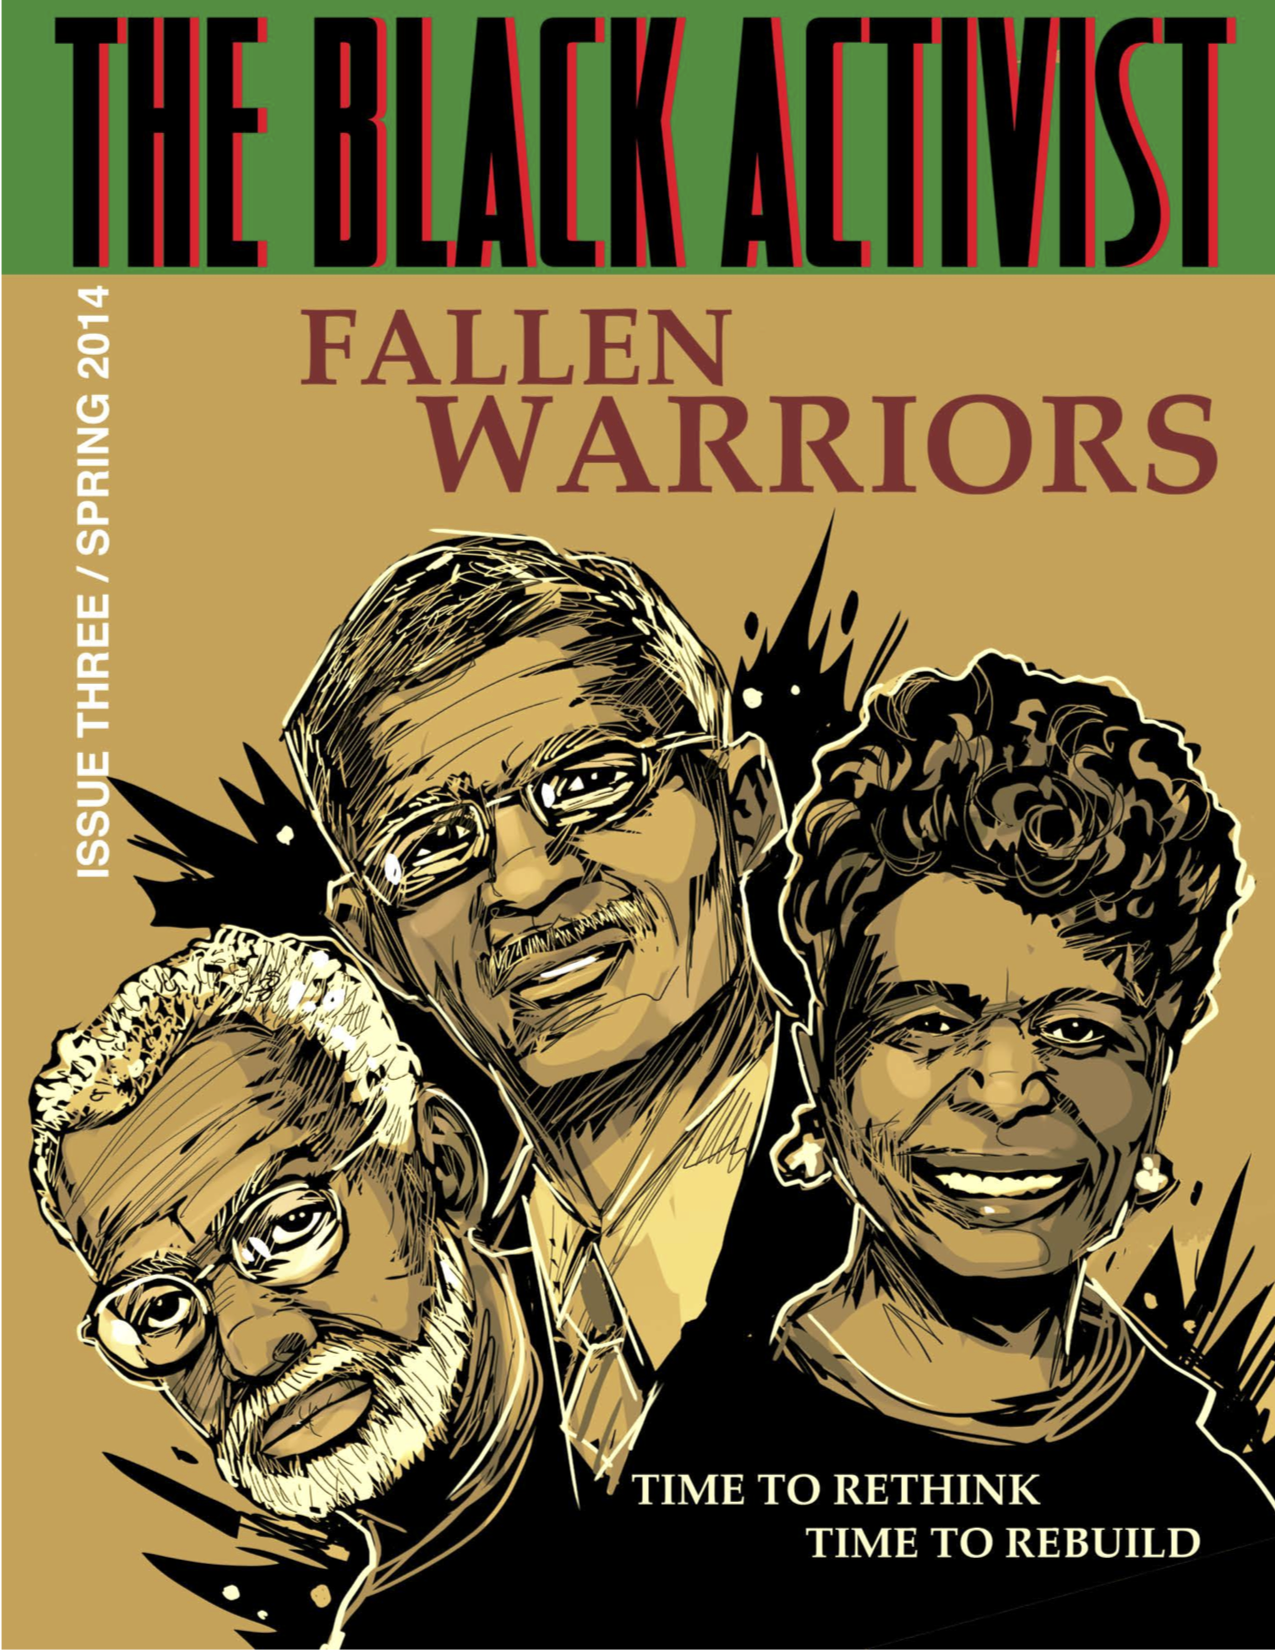 The Black Activist issue 3 front cover